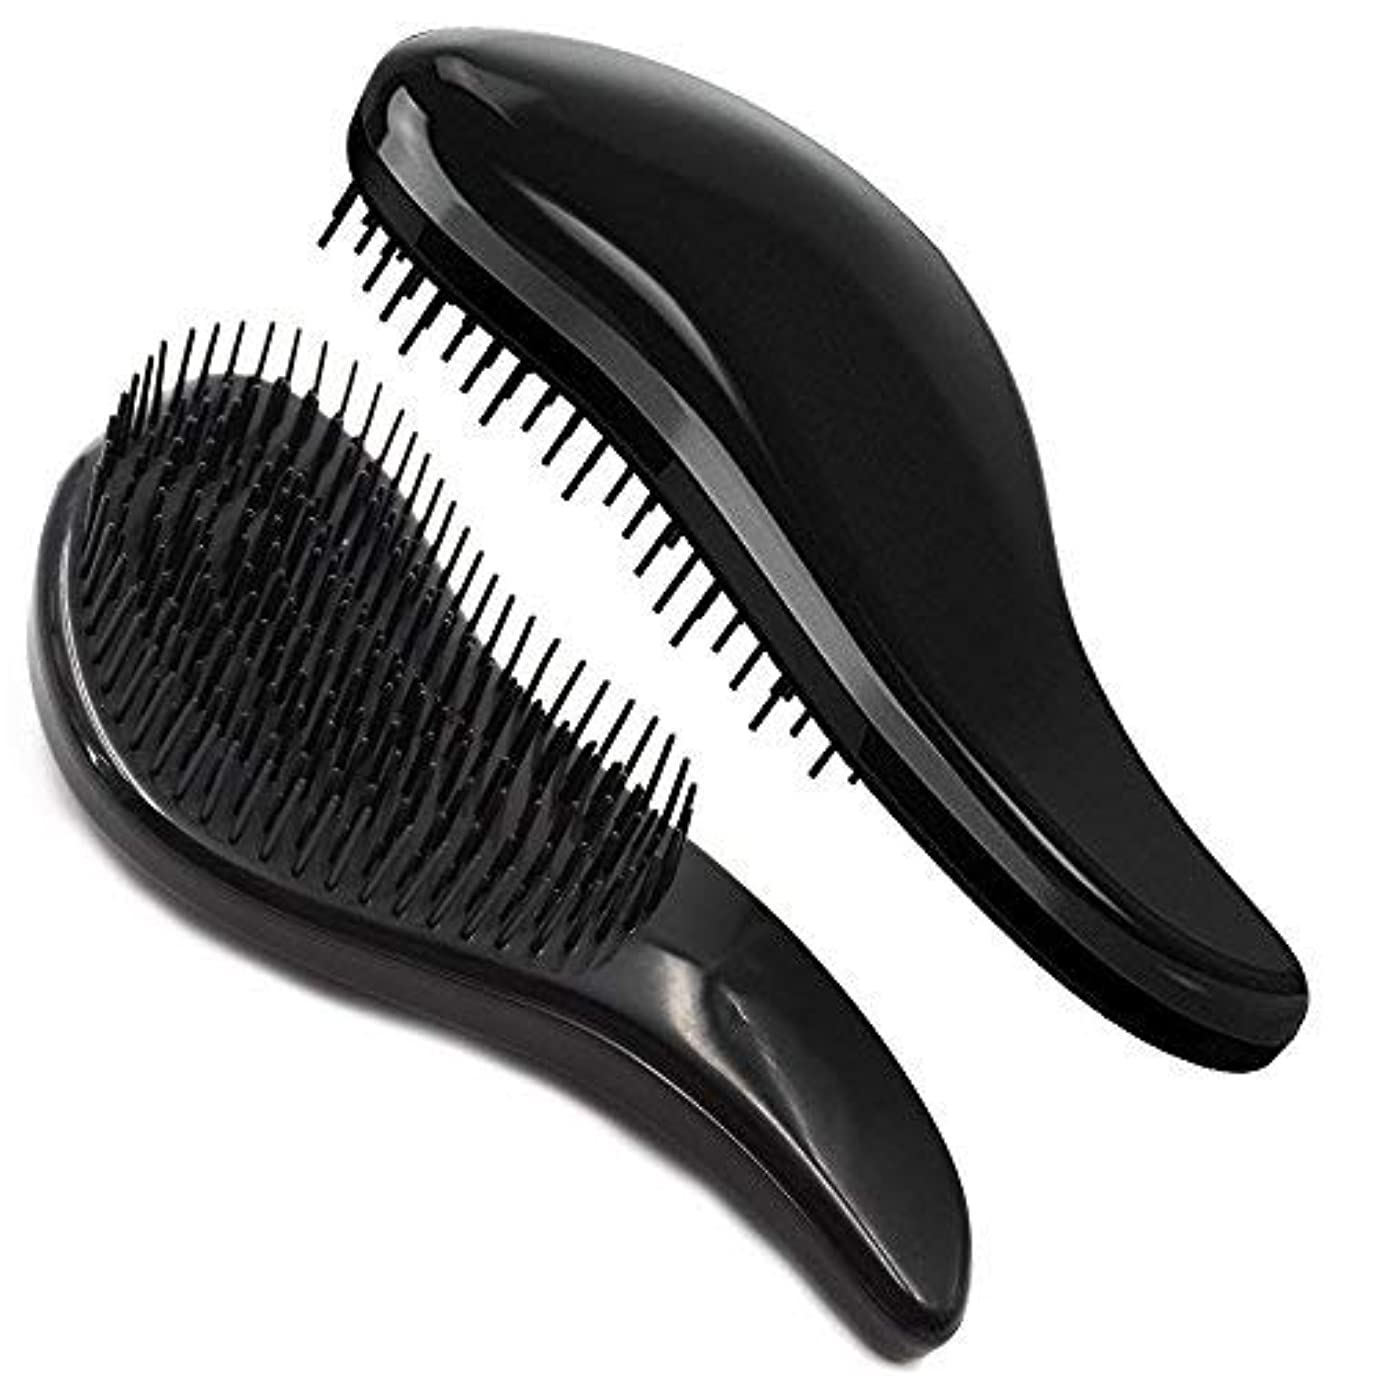 失う腹部槍Brush Master Detangler Hair Comb Hair Brush for Wet Hair Curly Hair Straight Hair for Women Men Kids Black [並行輸入品]